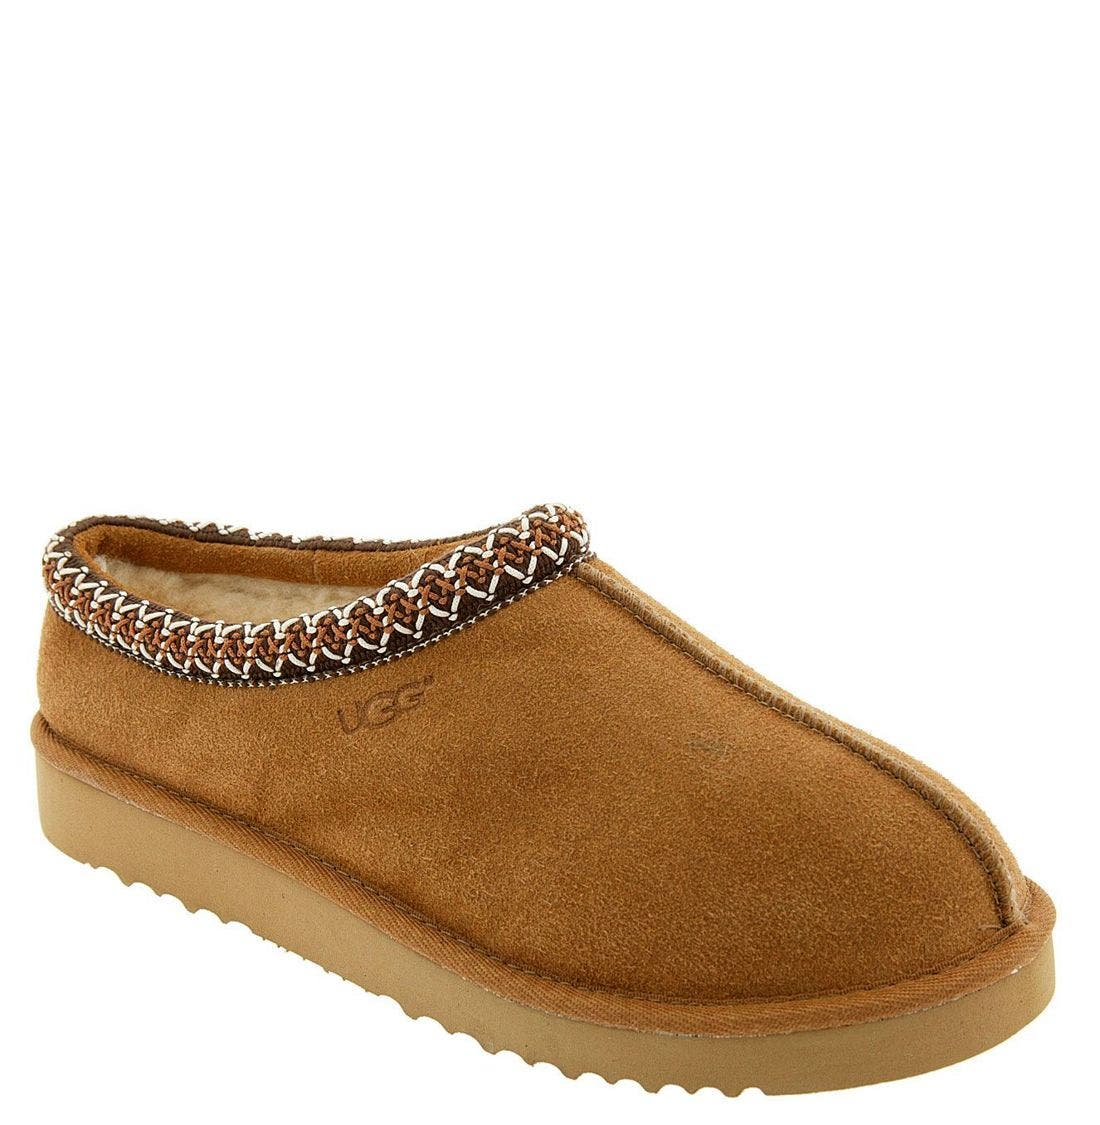 Main Image - UGG® 'Tasman' Slipper (Men)